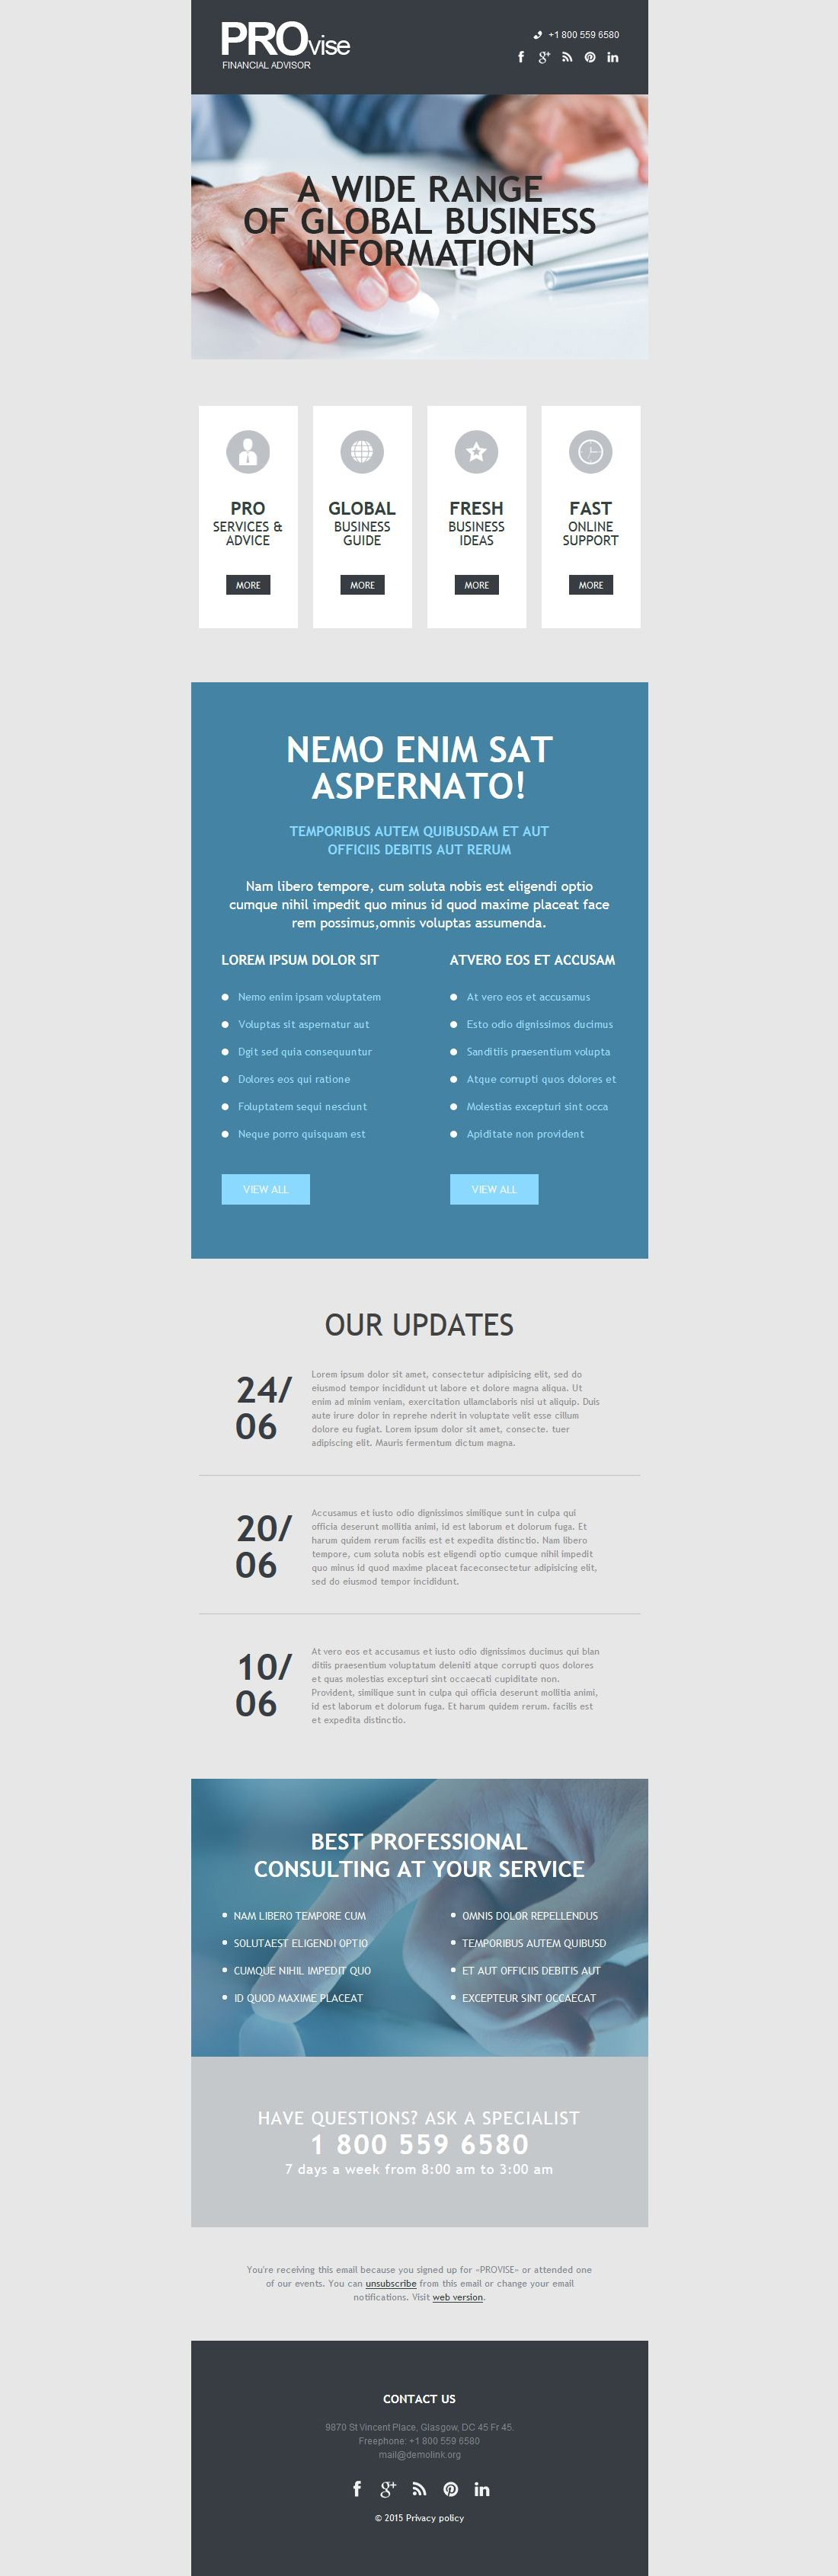 The Provise Business Newsletter Template Design 53701, one of the best Newsletter templates of its kind (business, most popular), also known as provise business Newsletter template, success company Newsletter template, enterprise solution Newsletter template, business Newsletter template, industry Newsletter template, technical Newsletter template, clients Newsletter template, customer support Newsletter template, automate Newsletter template, flow Newsletter template, services Newsletter template, plug-in Newsletter template, flex Newsletter template, profile Newsletter template, principles Newsletter template, web products Newsletter template, technology system and related with provise business, success company, enterprise solution, business, industry, technical, clients, customer support, automate, flow, services, plug-in, flex, profile, principles, web products, technology system, etc.